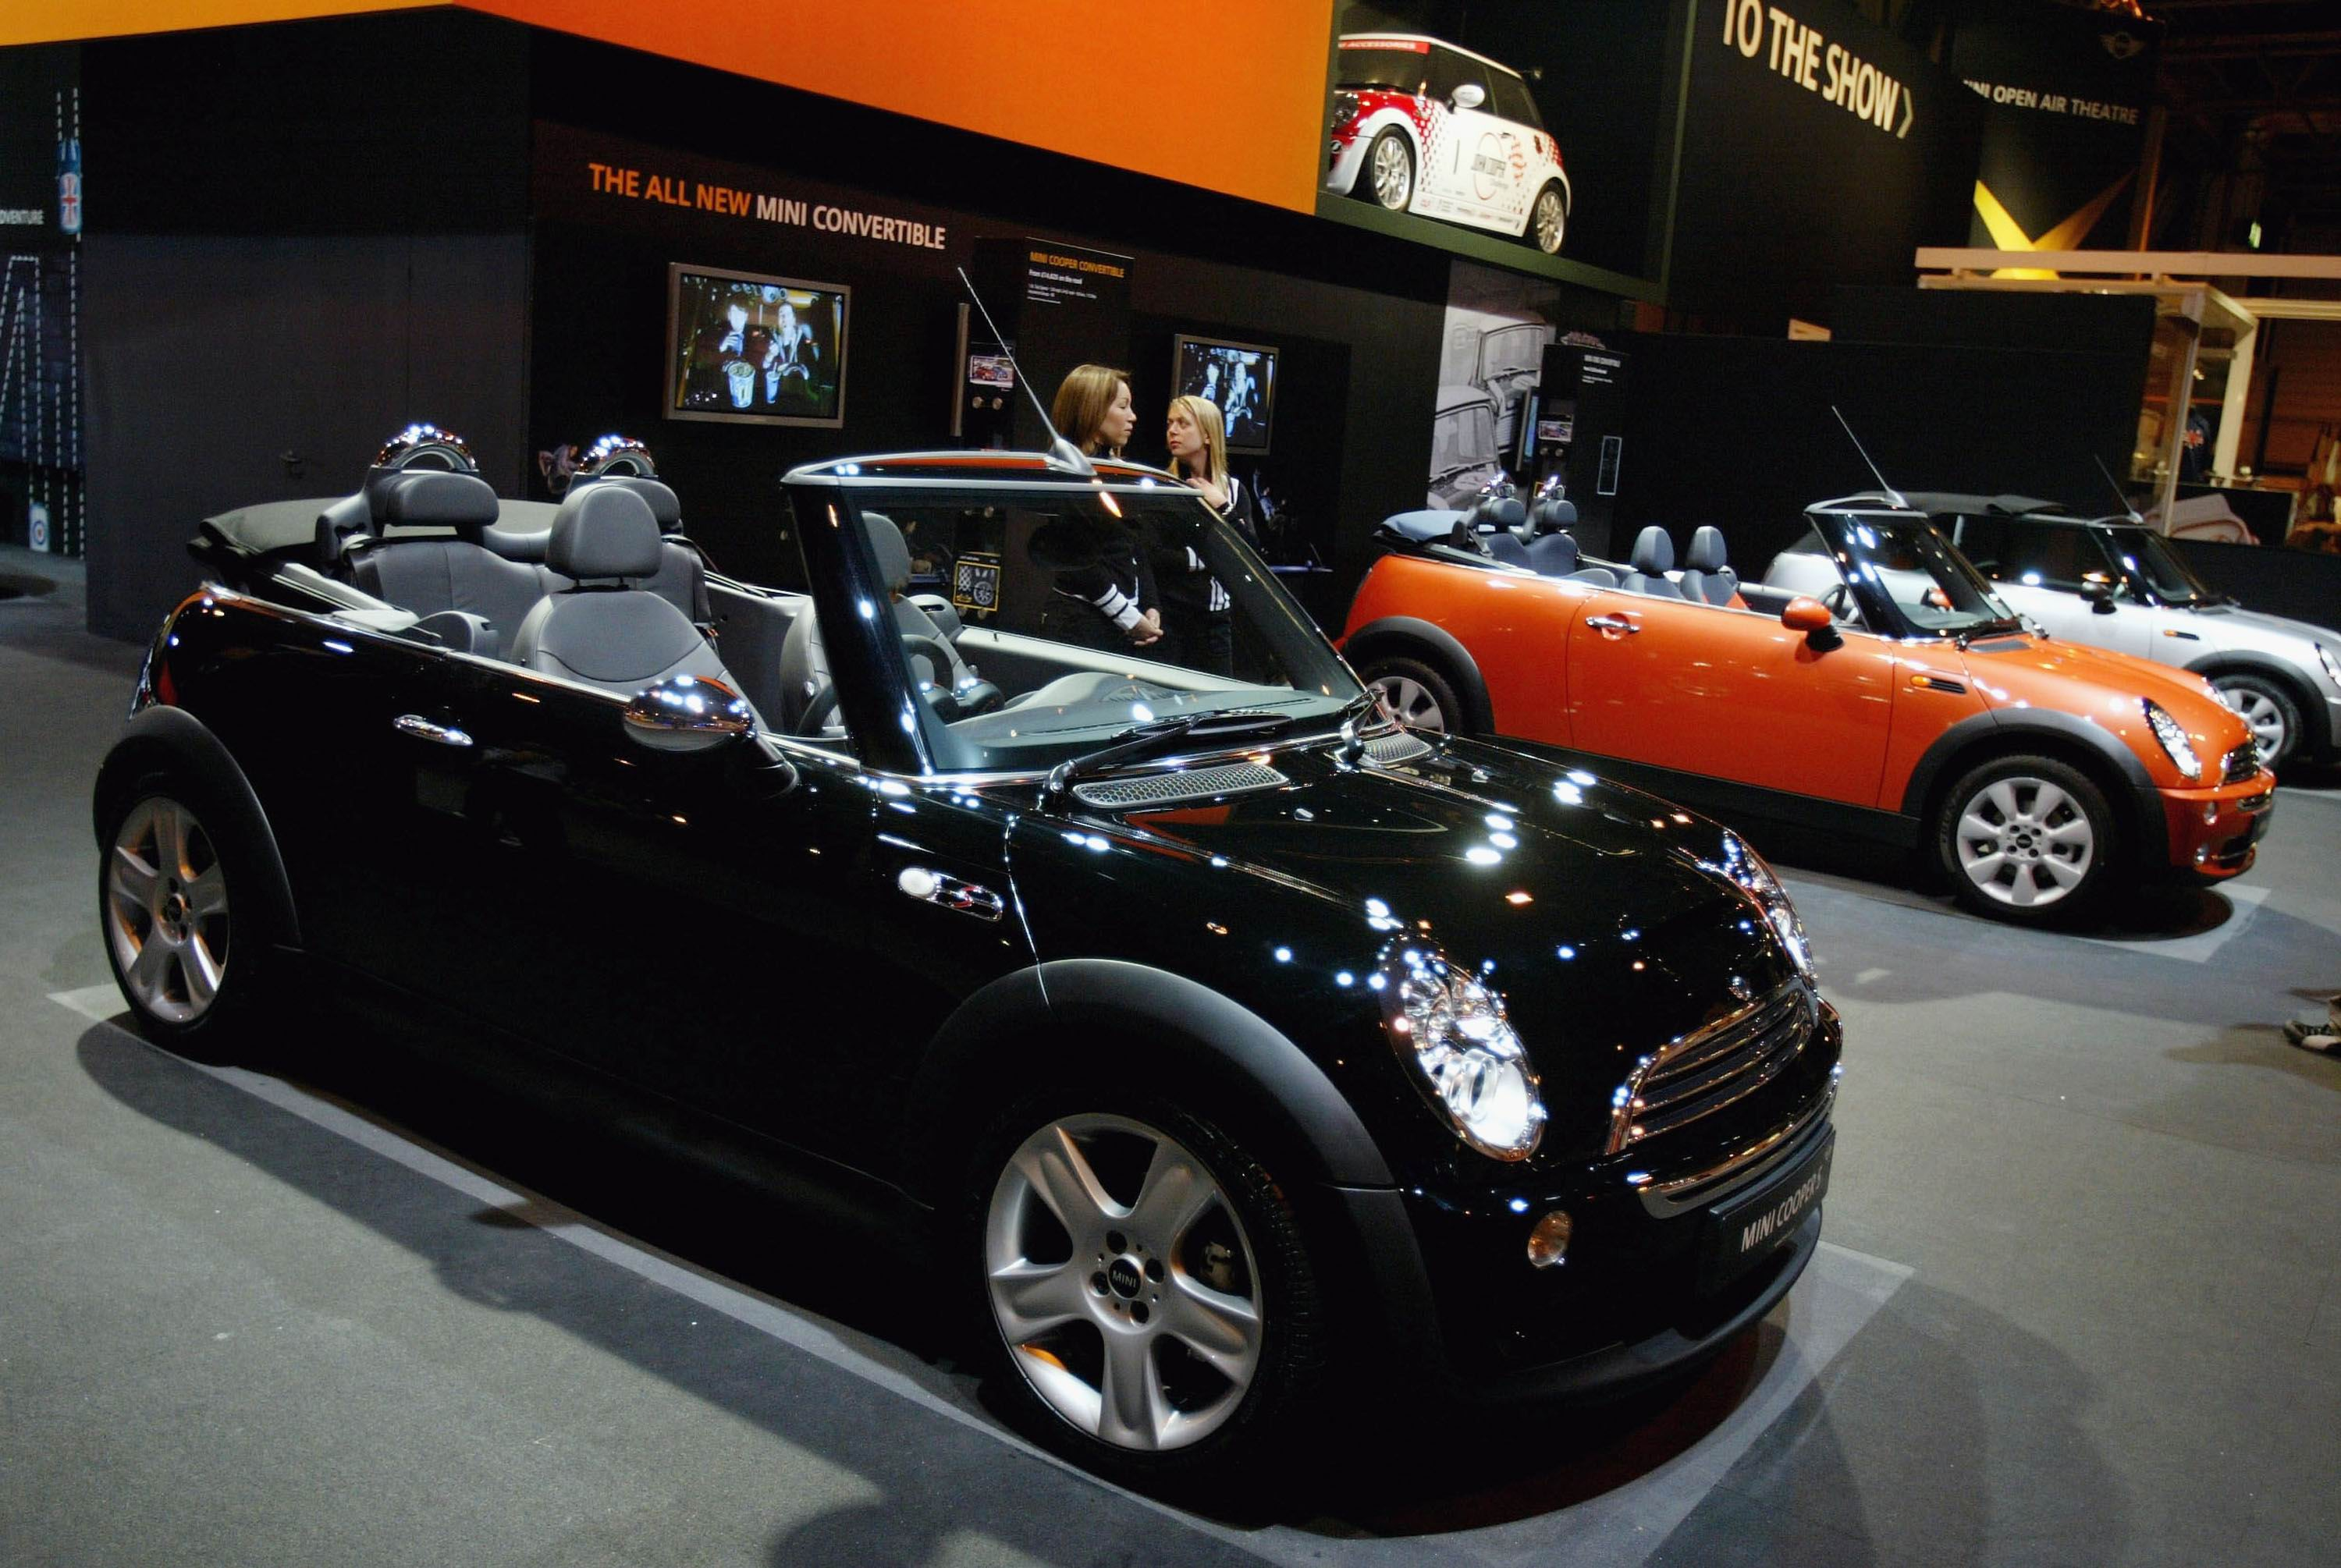 Mini's convertible is proving a big hit.